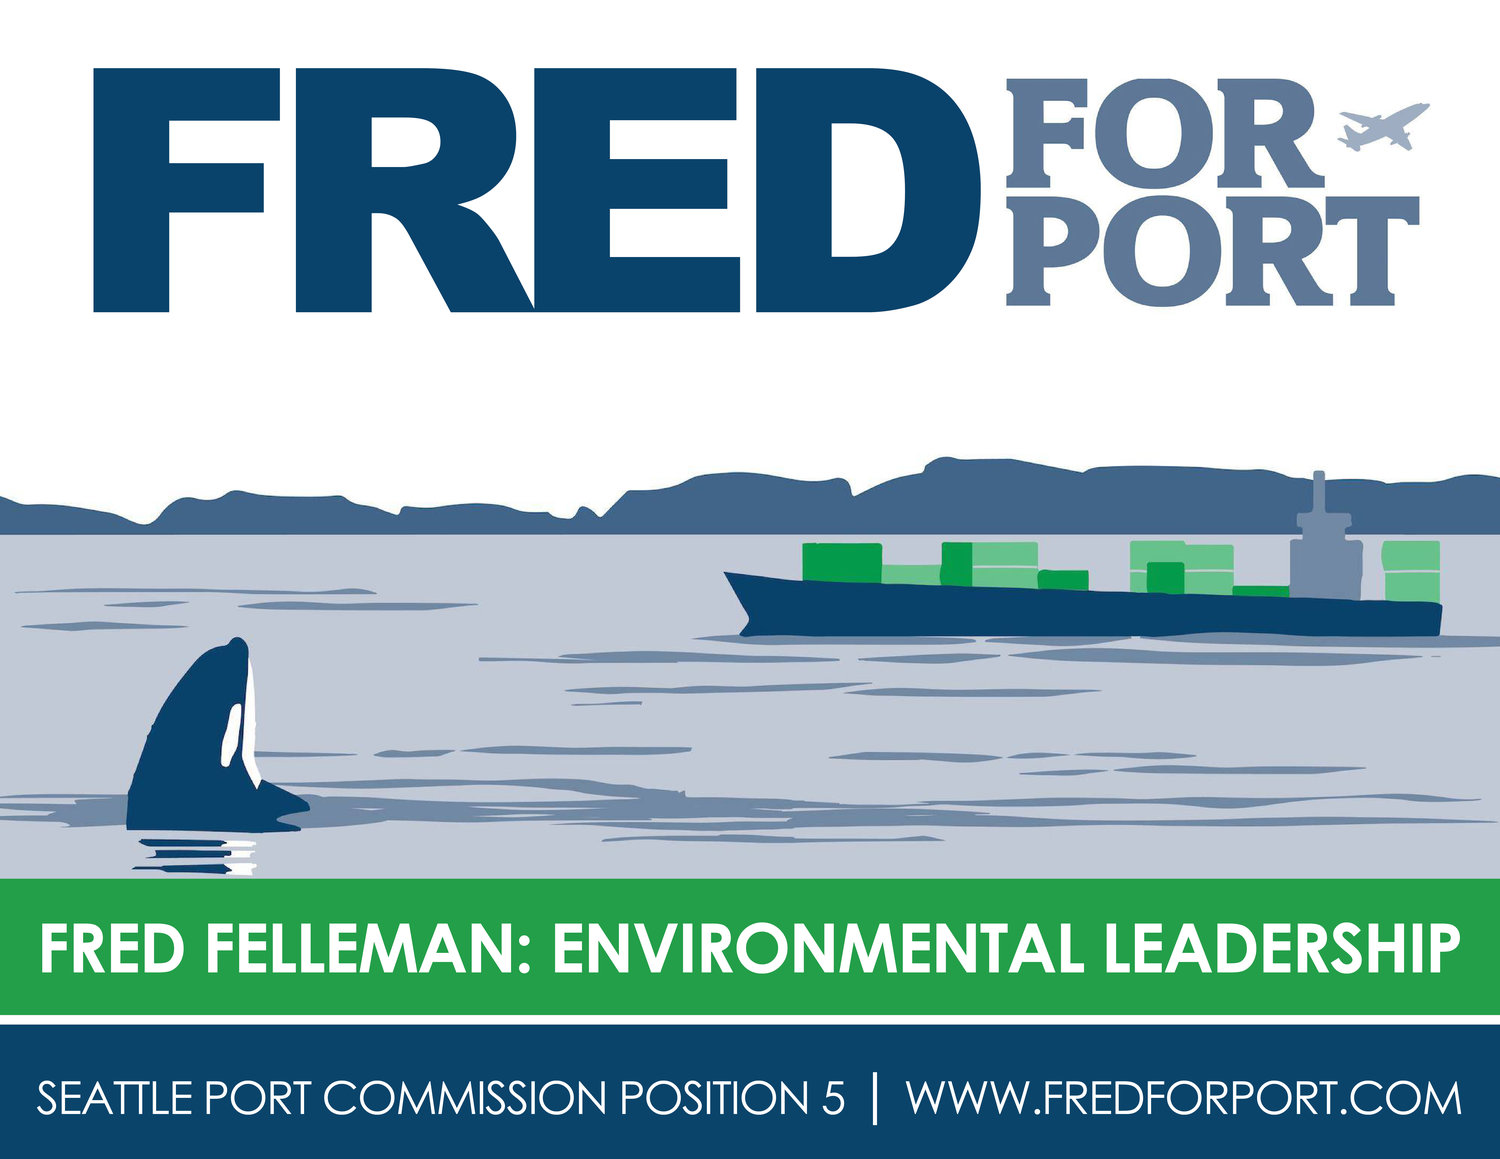 Fred for Port